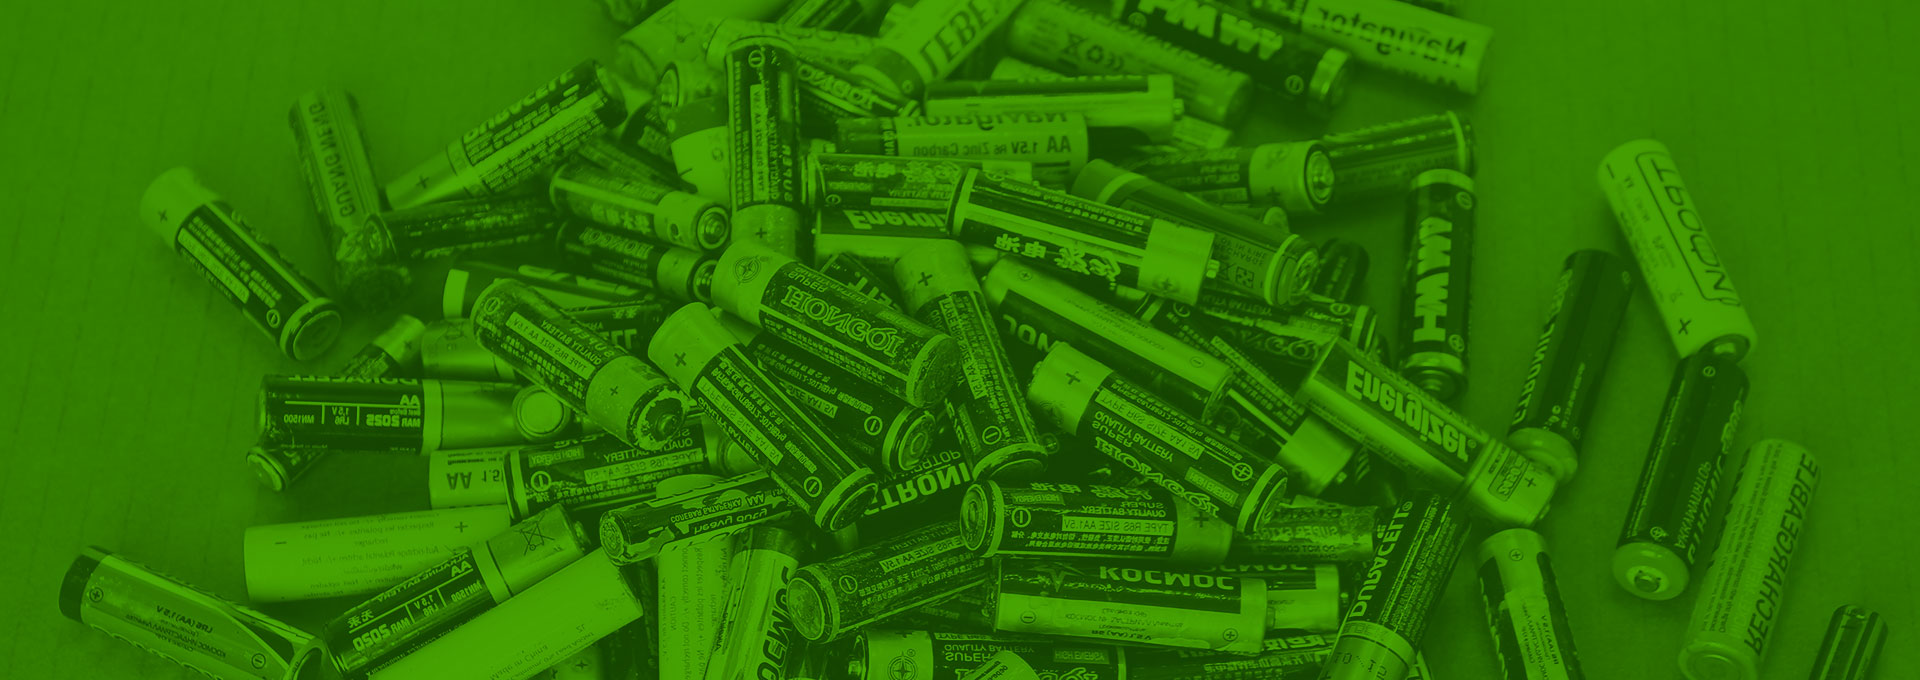 Hazardous Waste Recycling: Sustainability Initiative Highlights